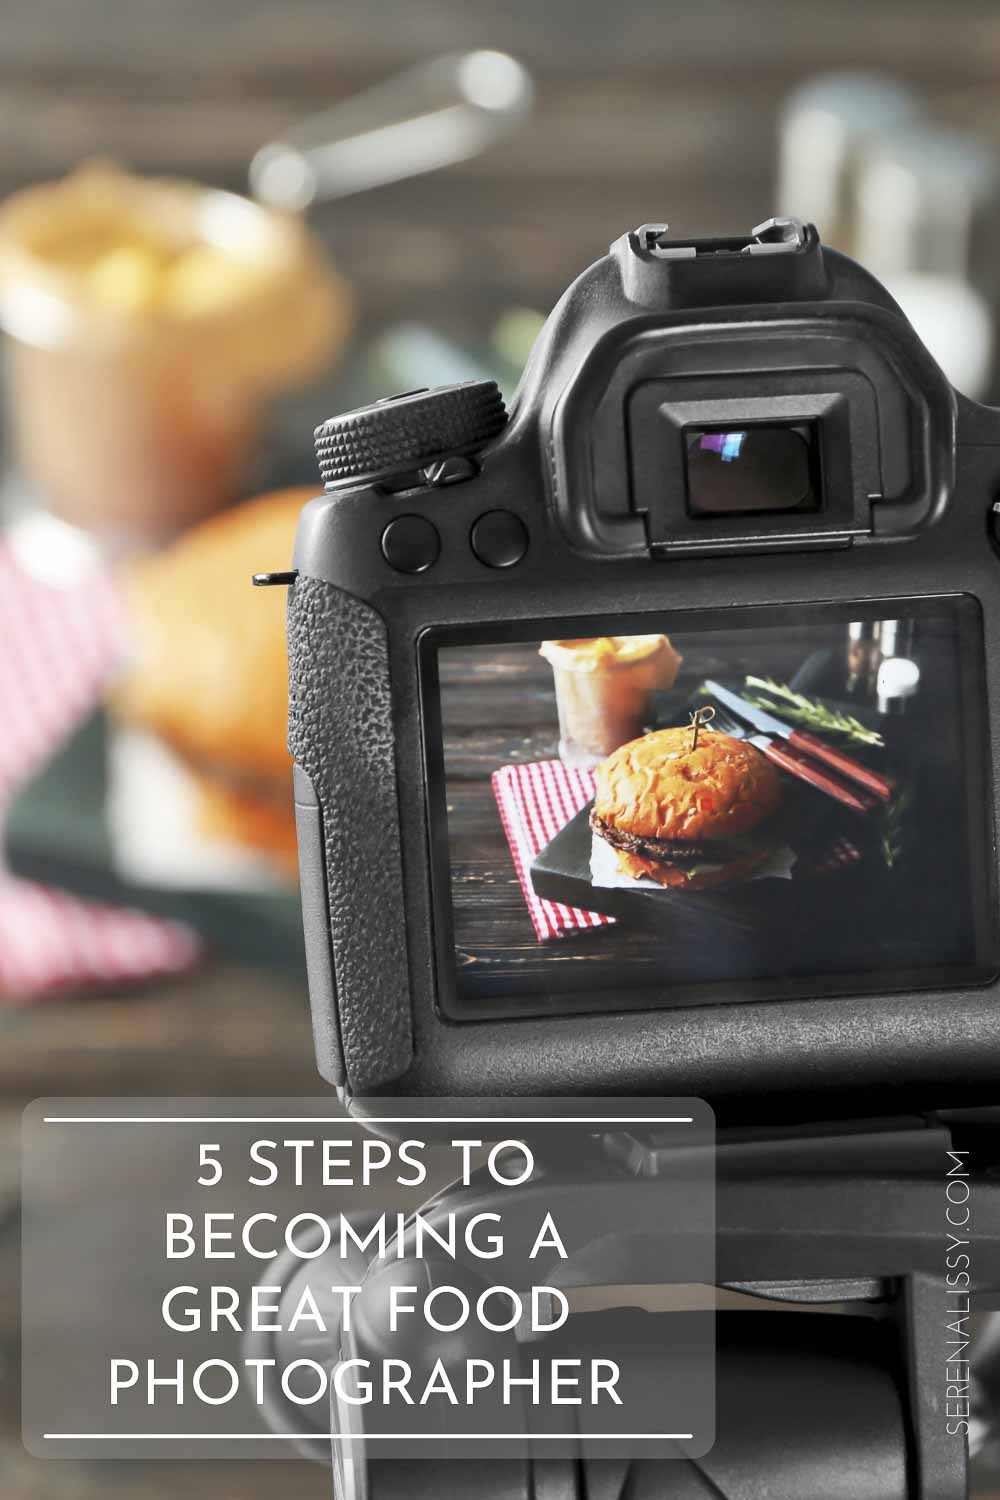 dslr camera taking image of food on table